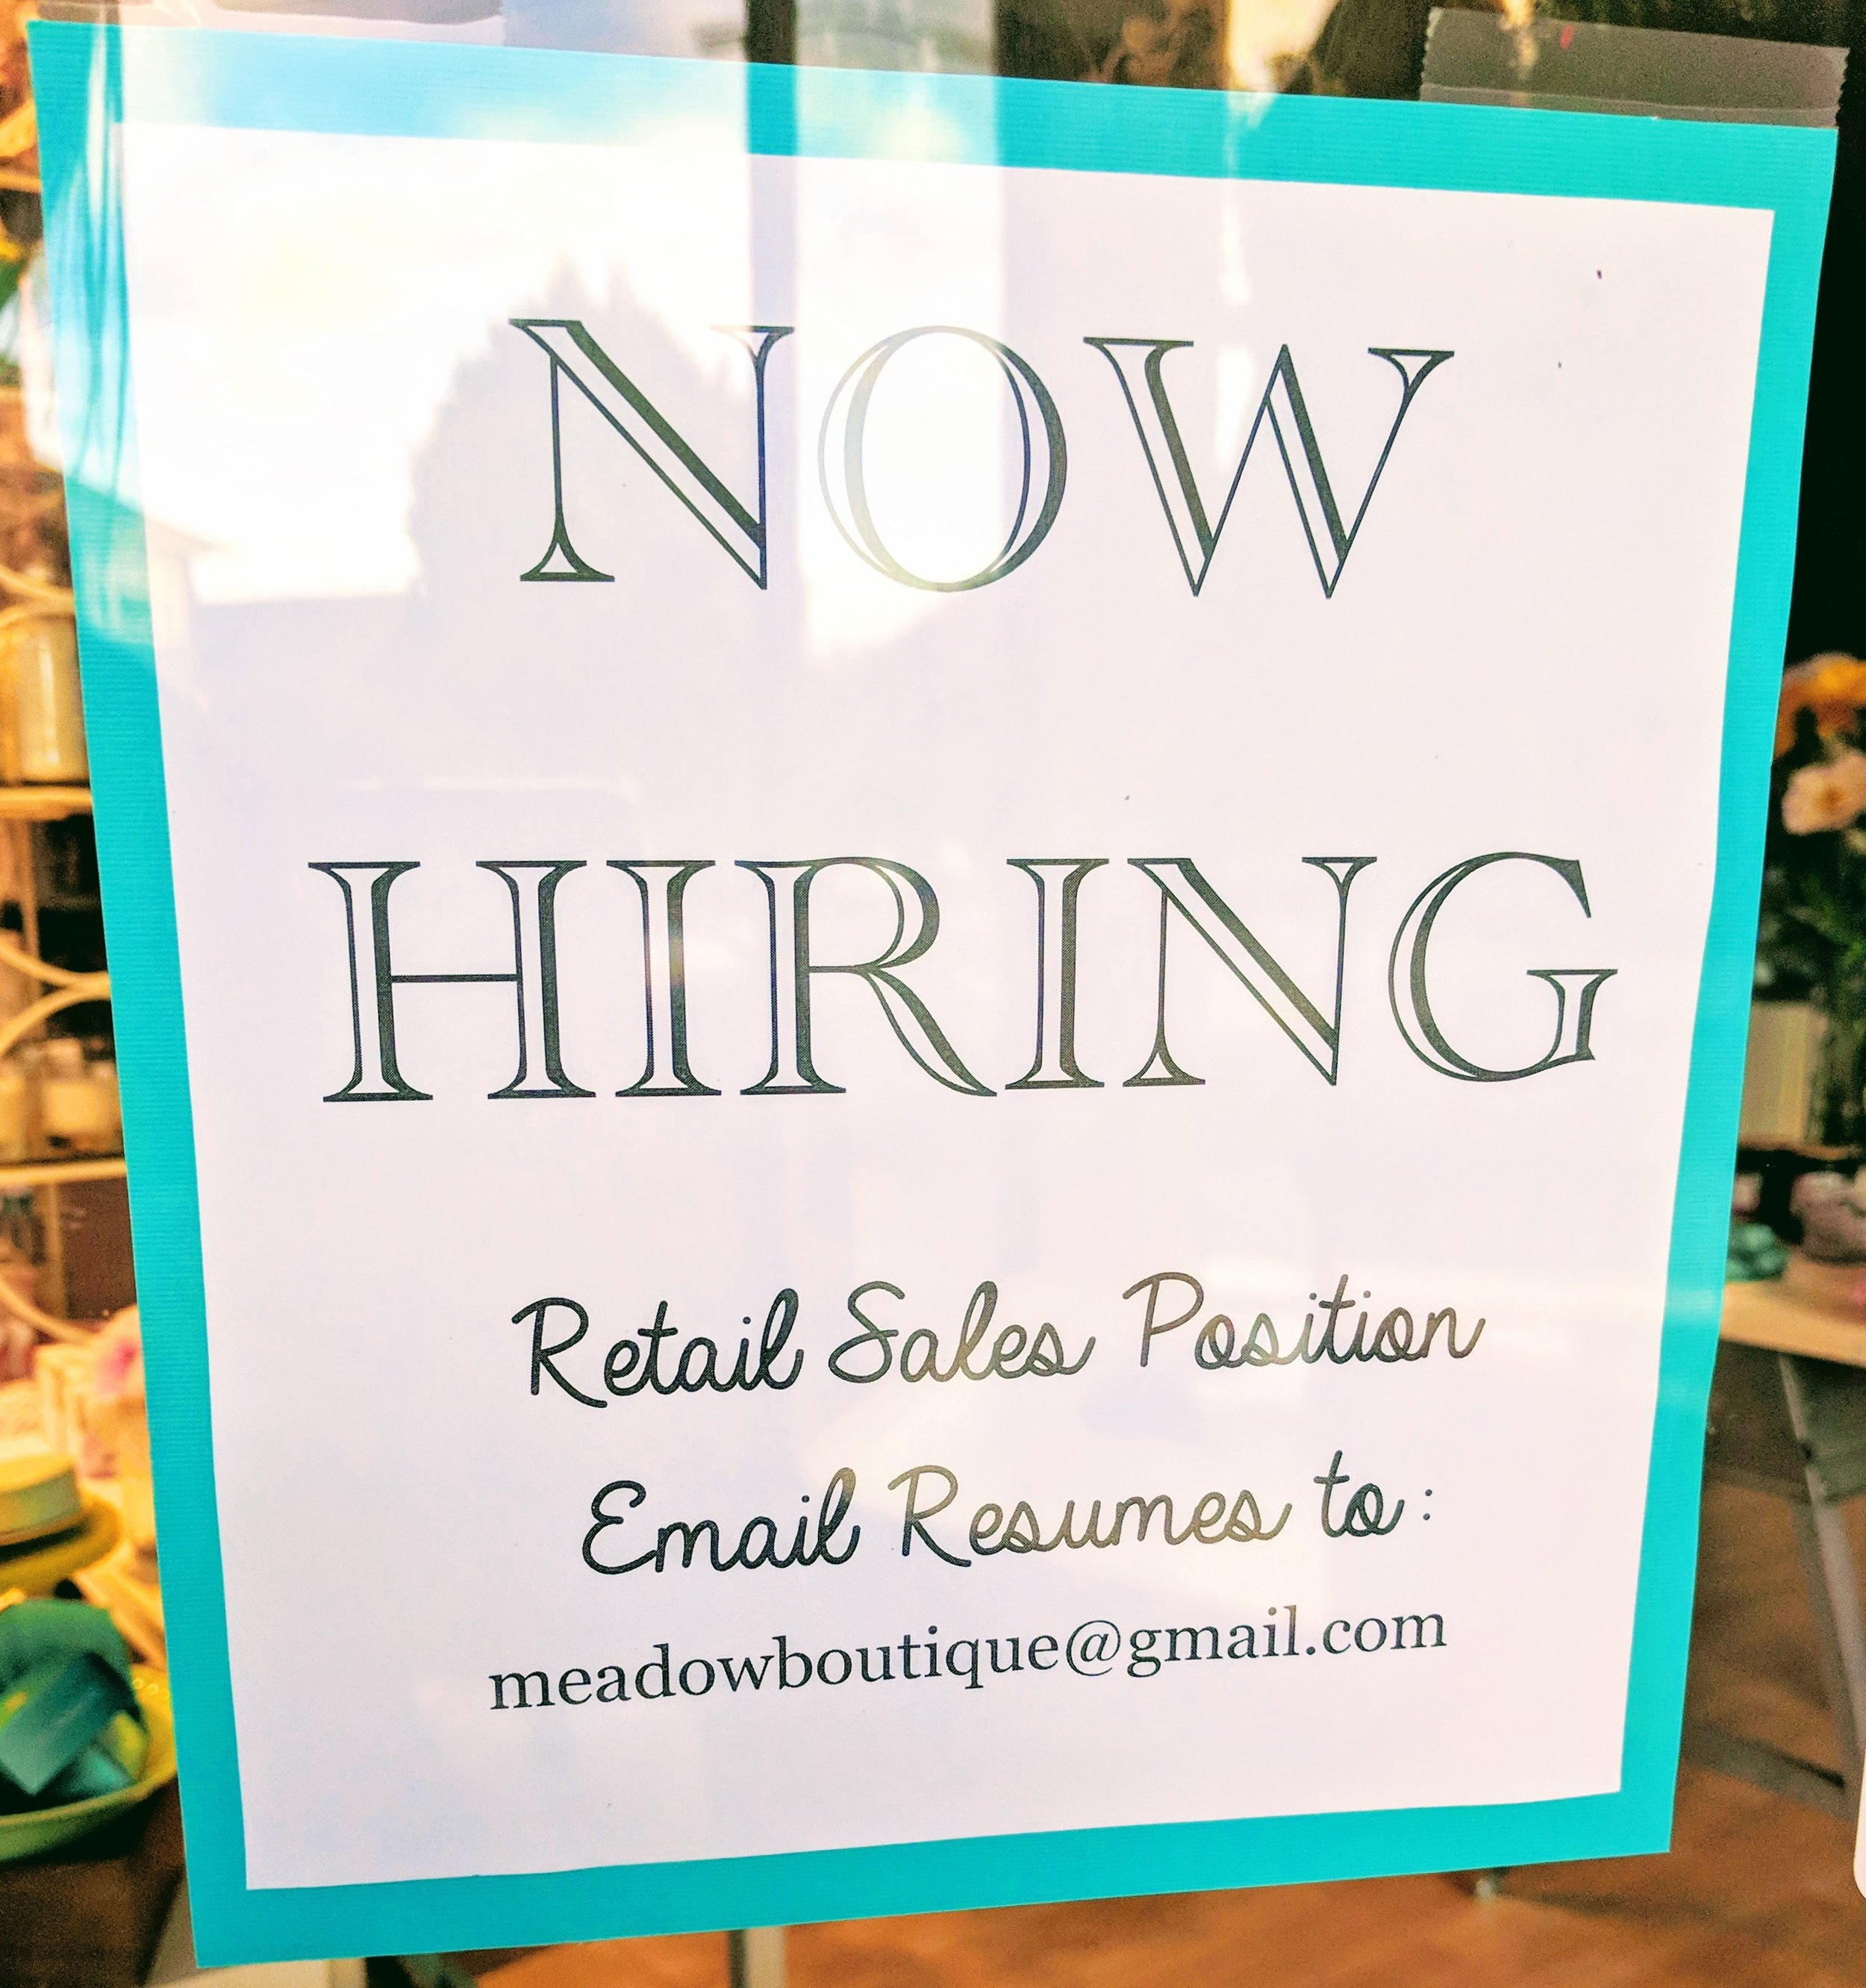 Now Hiring at Meadow, apply at meadowboutique@gmail.com!